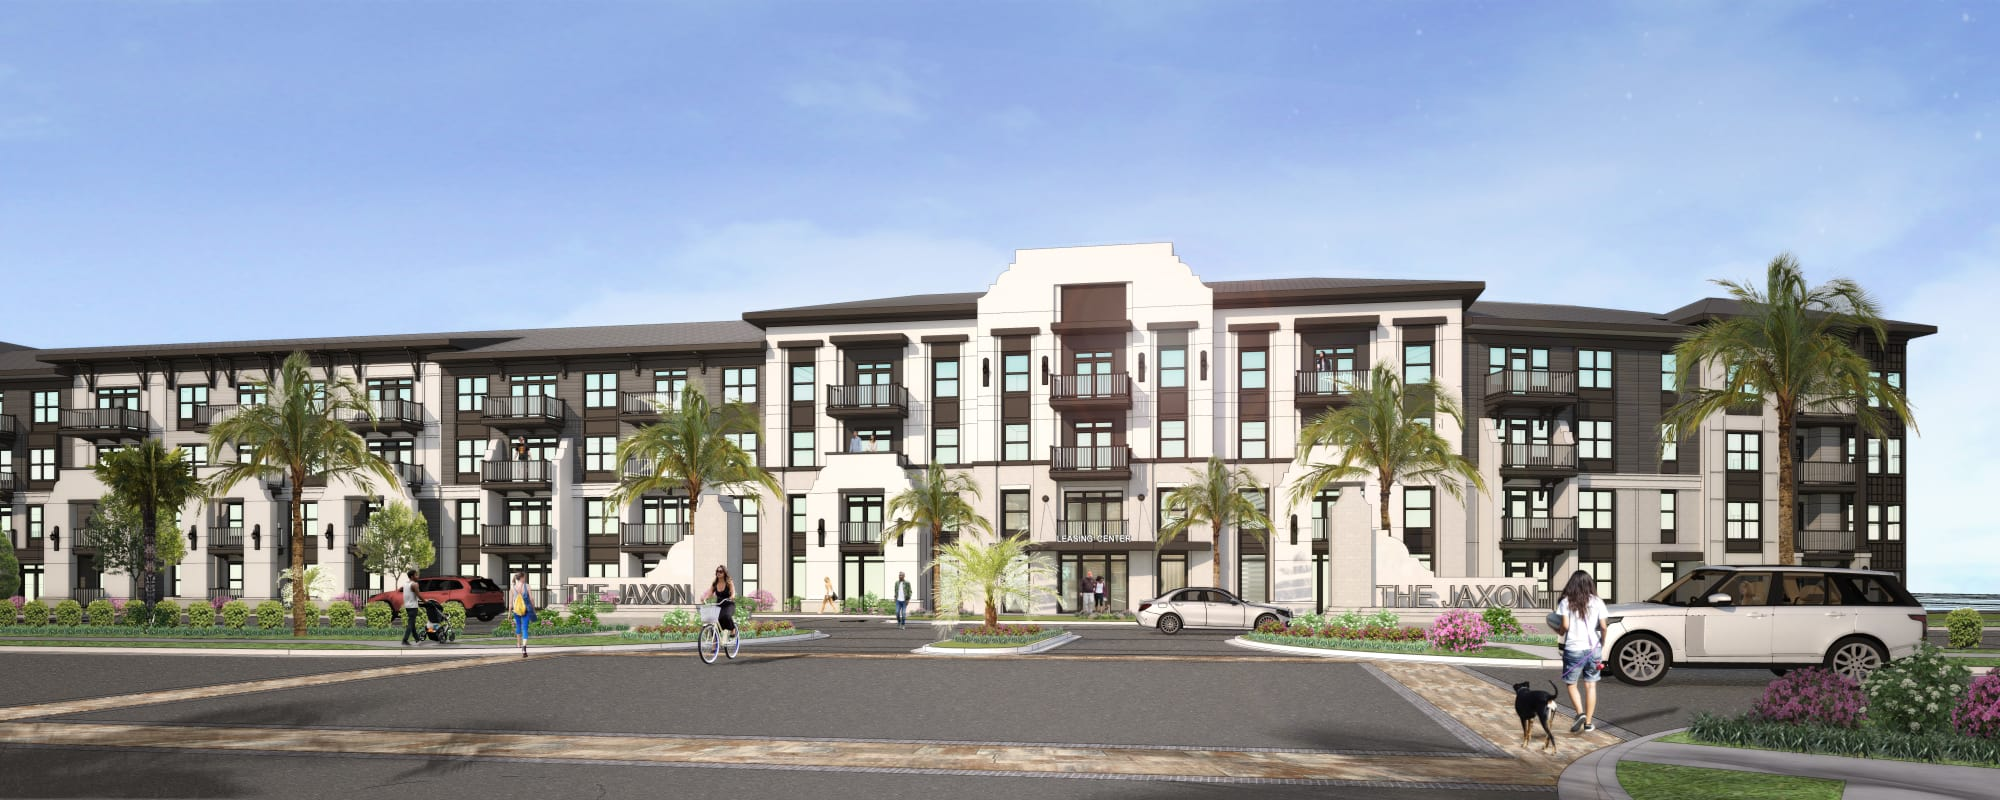 Exterior rendering of The Jaxon in Jacksonville